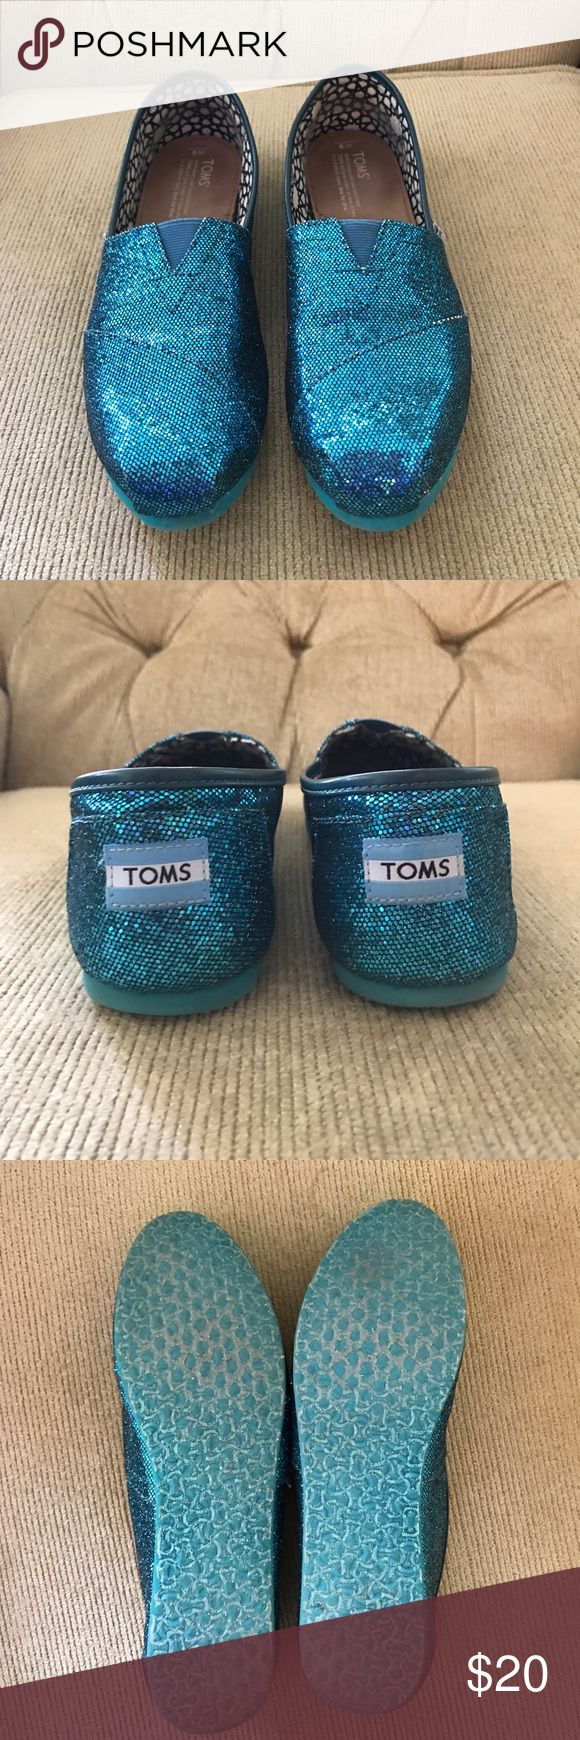 """TOMS Glitter classics, size 9. Great condition. TOMS Glitter classics, size 9. Great condition. Box included. Box says the color is """"emerald glitters"""" but I'd call the color teal or turquoise. Some of the glittery color is missing in places where the material is folded. (see photo) This is how they came when they were new, and is not due to wear. Shoes Flats & Loafers"""